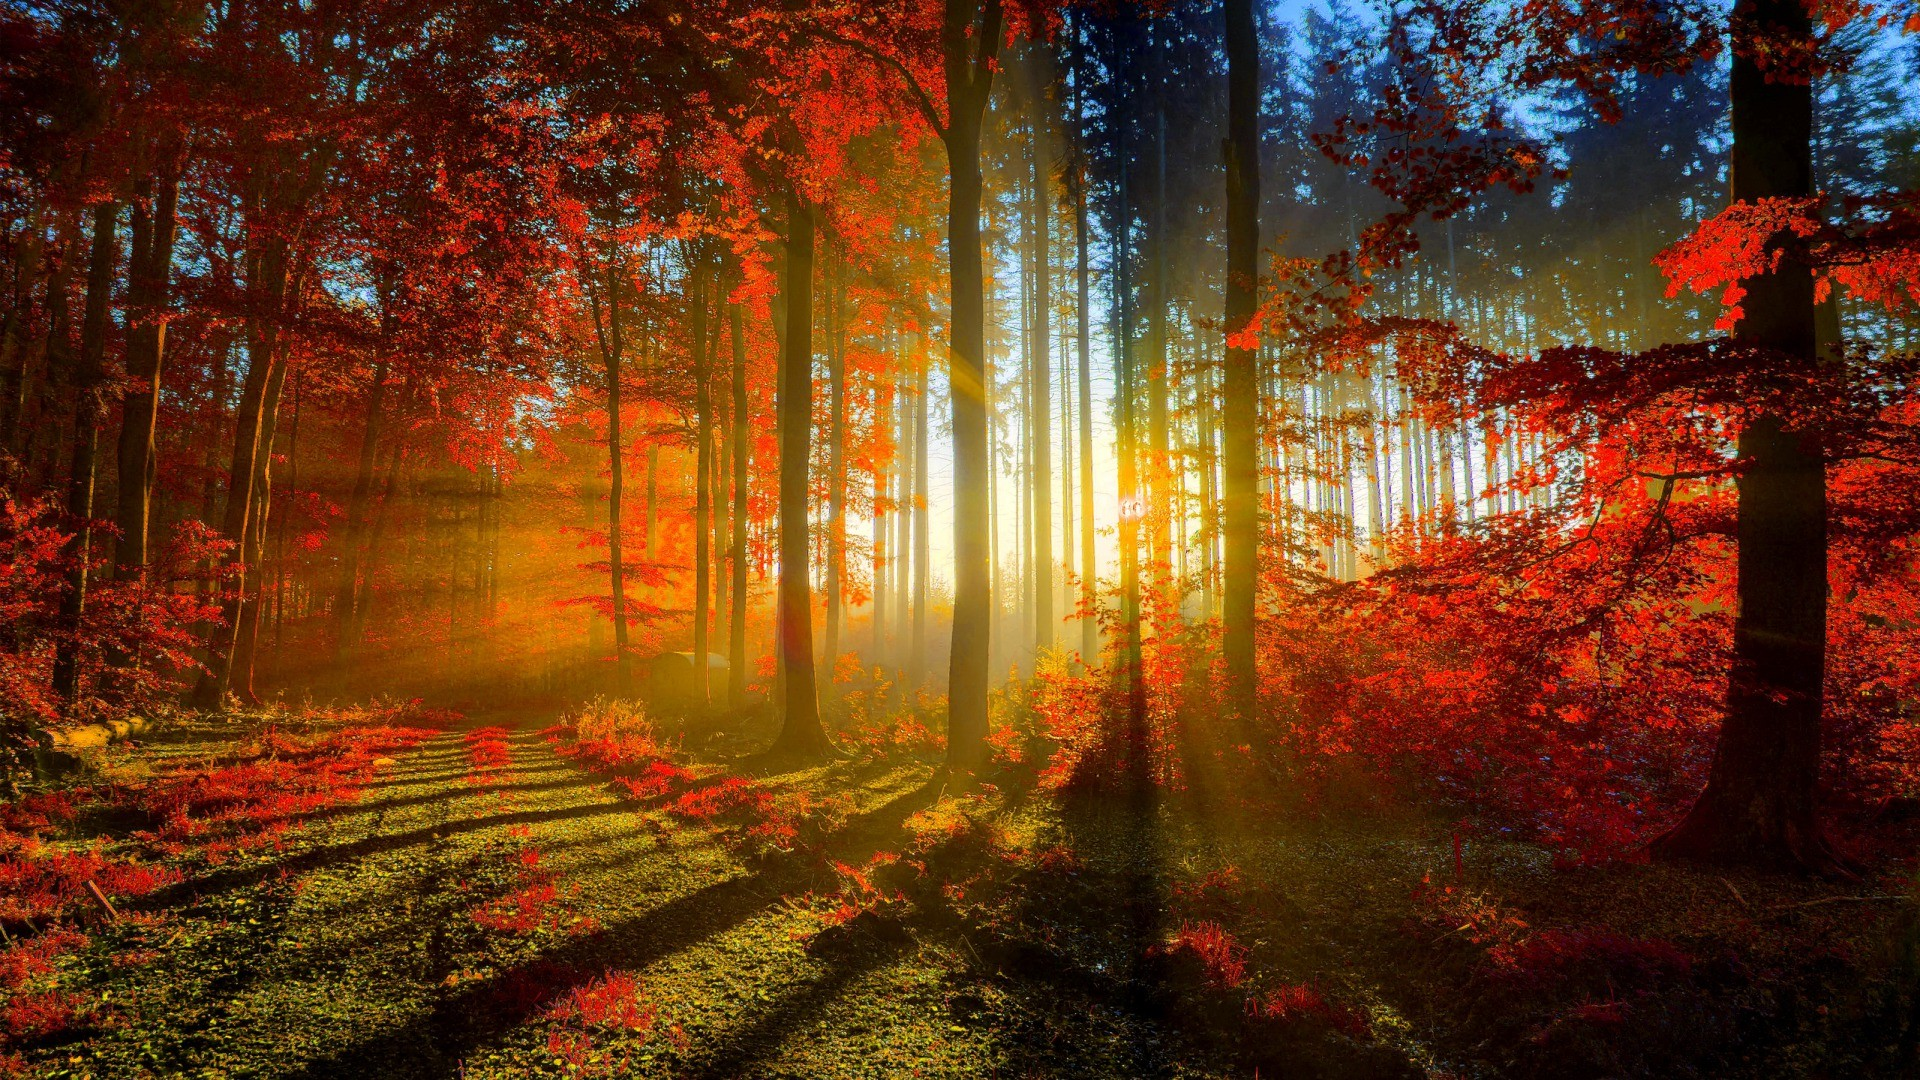 Autumn Wallpaper Widescreen Download Free Amazing High Resolution Backgrounds For Desktop Mobile Laptop In Any Resolution Desktop Android Iphone Ipad 1920x1080 2560x1440 320x480 1920x1200 Etc Wallpapertag